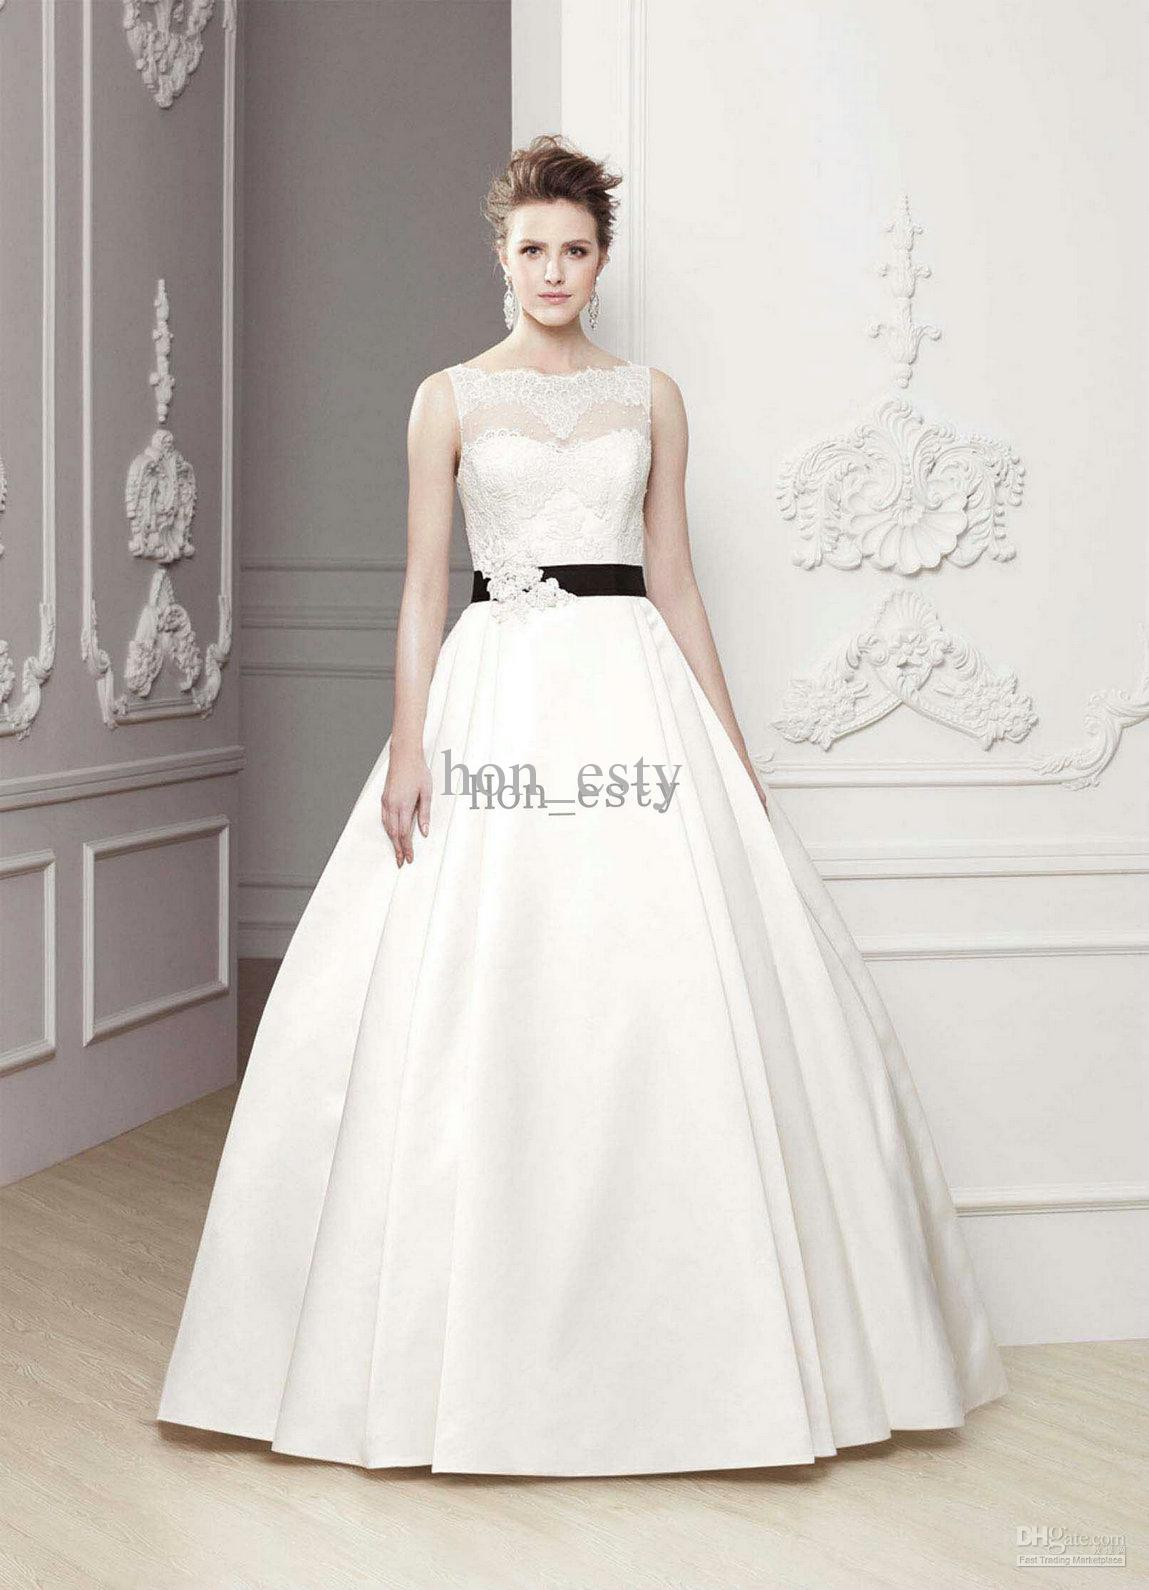 Lovely wedding dresses satin bateau neck lace beaded appliques see larger image ombrellifo Images